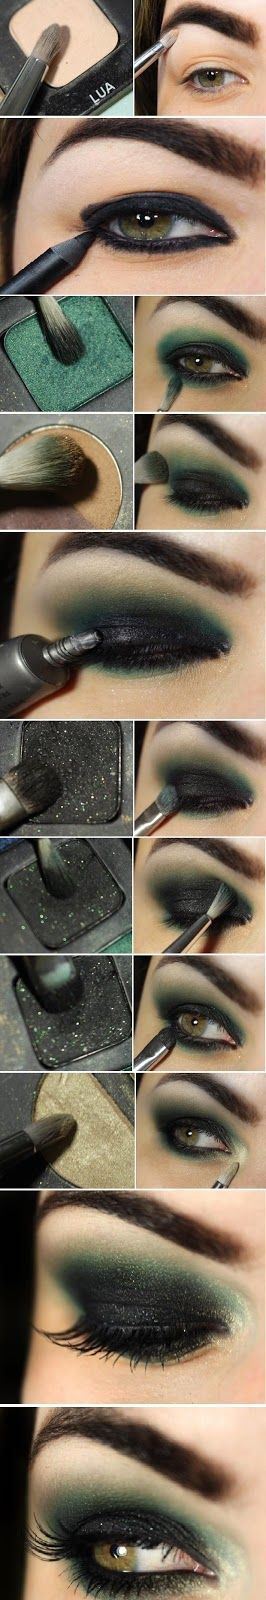 deep green eyes- good for Halloween makeup